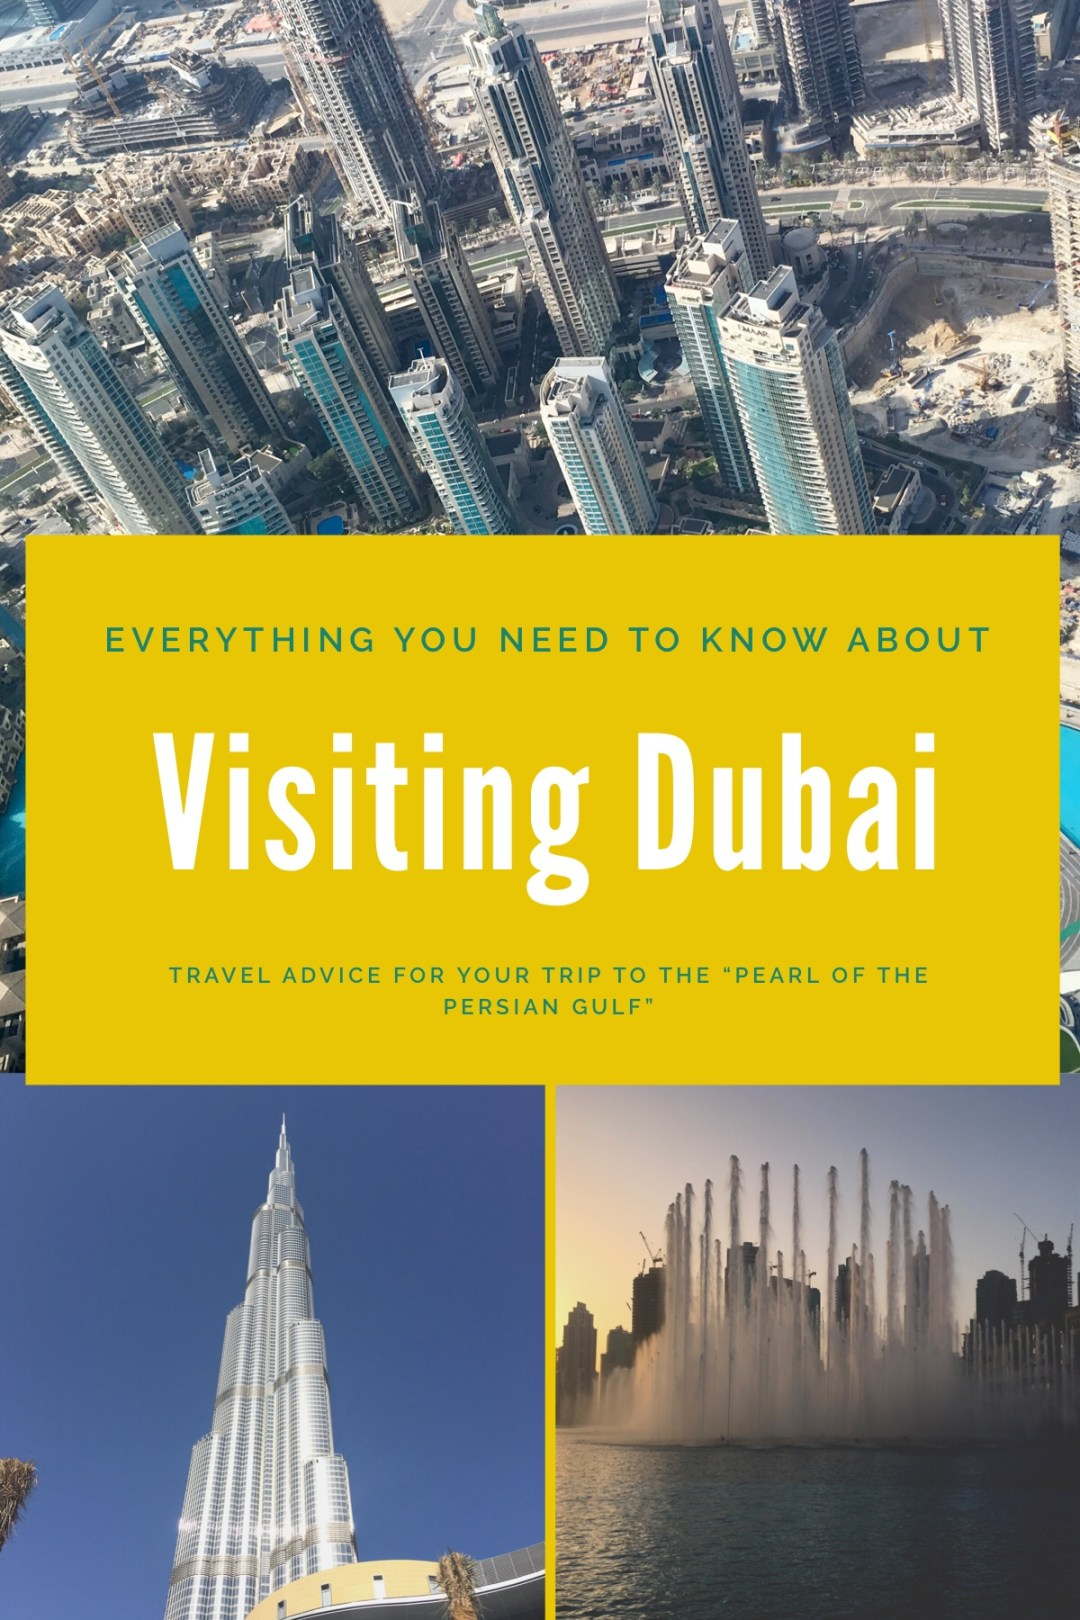 Travel tips for visiting Dubai